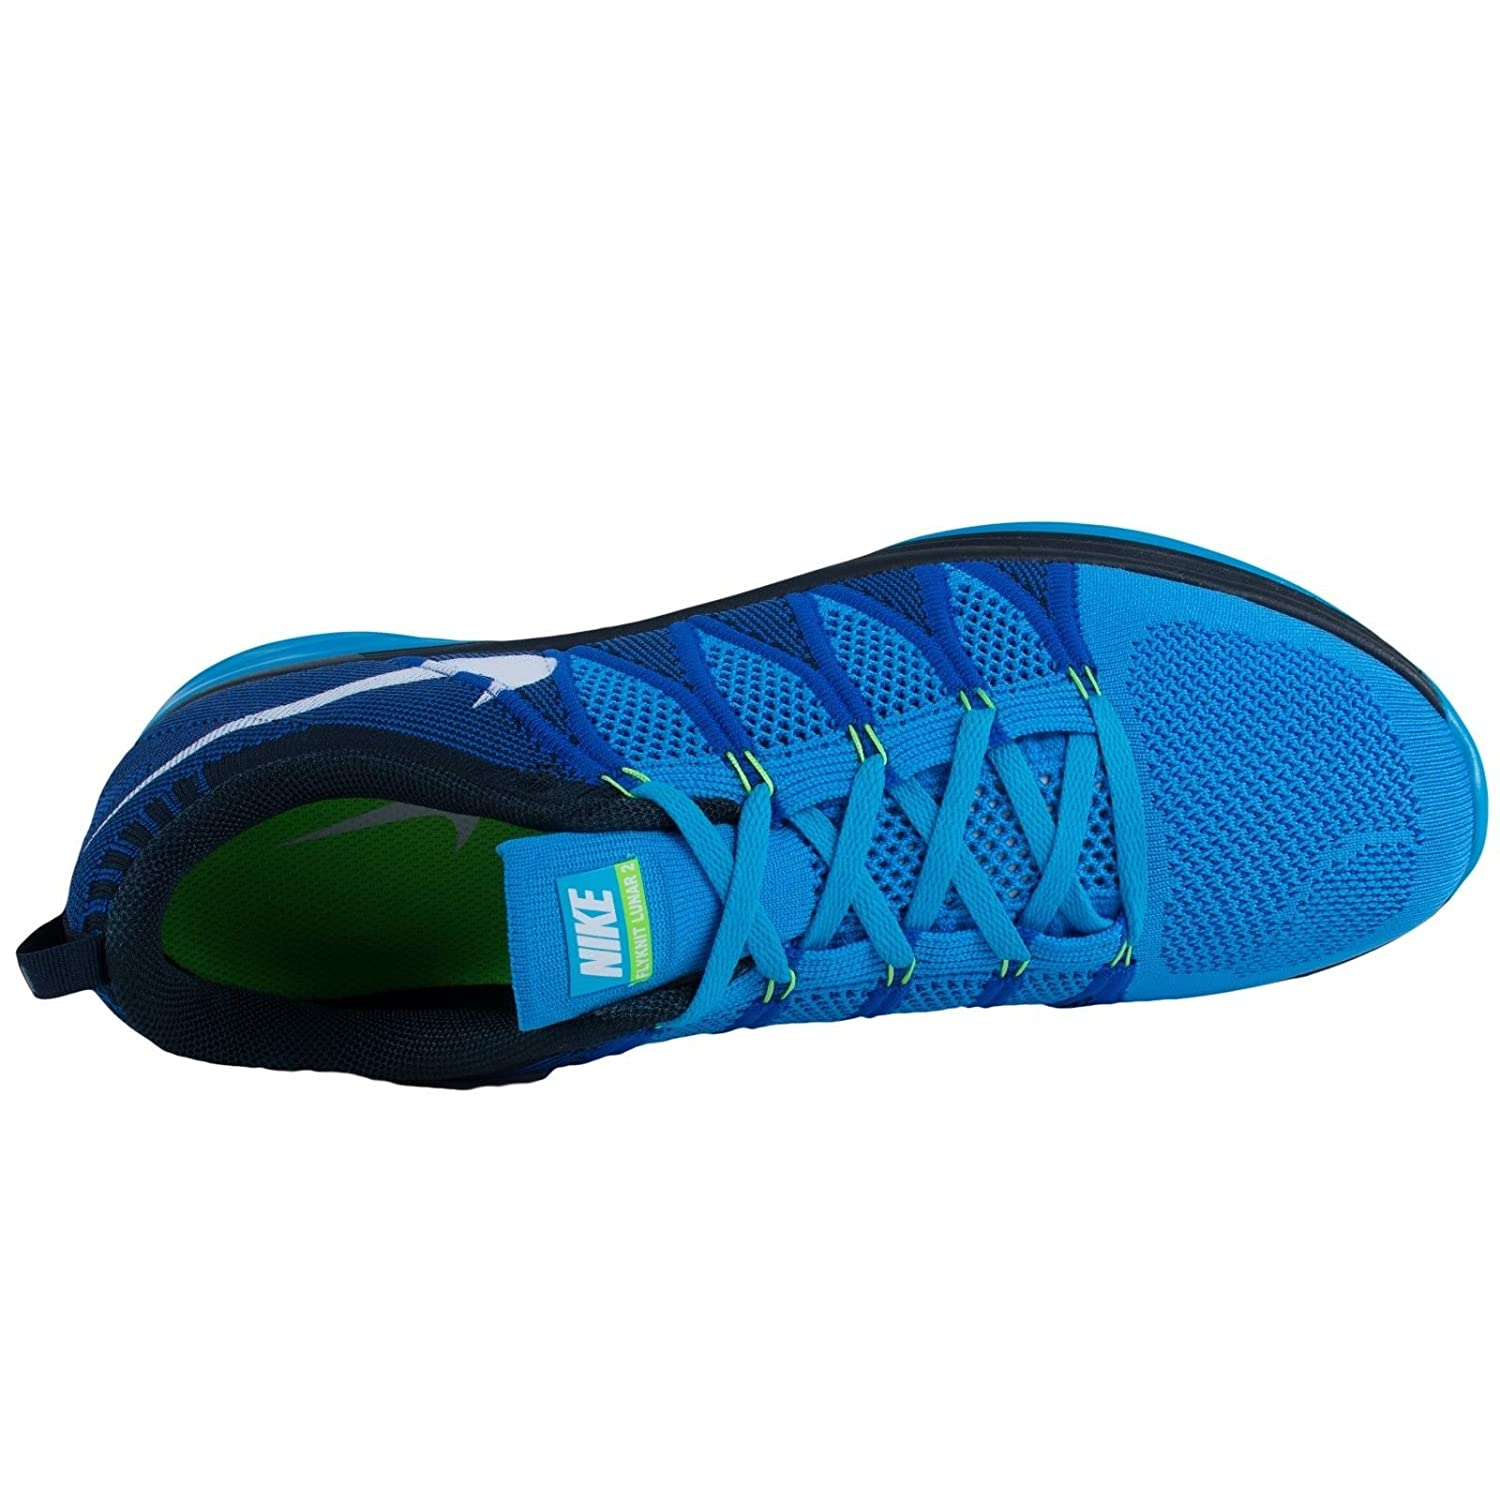 sports shoes 4b0a9 41176 Nike Flyknit Lunar2 Mens Running Shoes 620465-414 Vivid Blue White-Game  Royal-Dark Obsidian 12 M US  Buy Online at Low Prices in India - Amazon.in